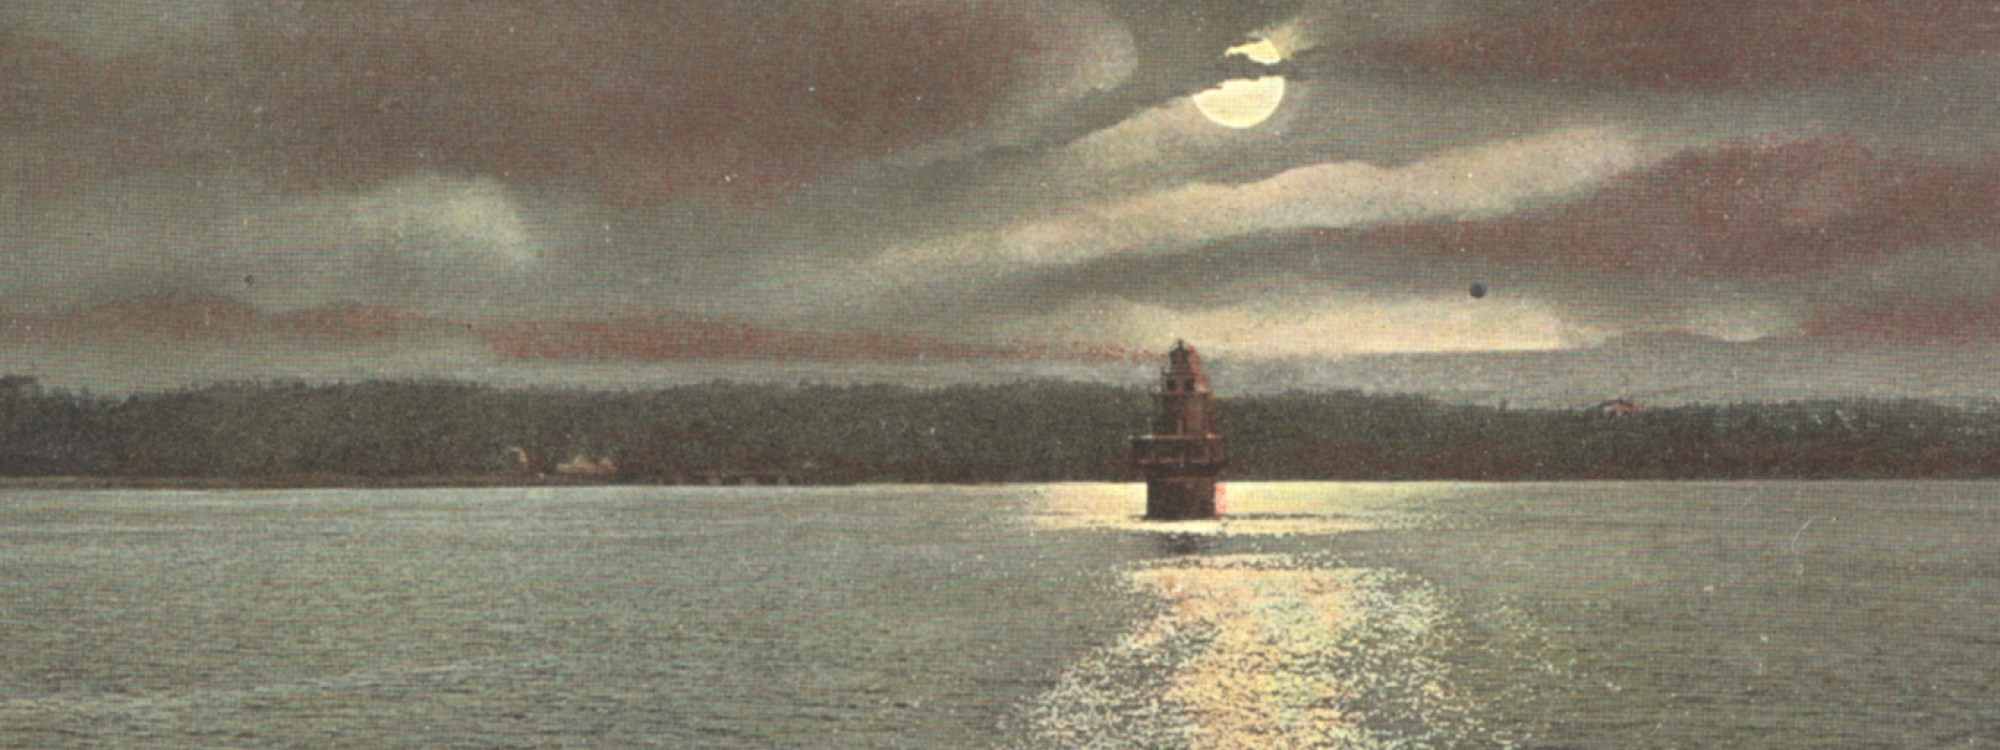 Loss of Crabtree Ledge Lighthouse